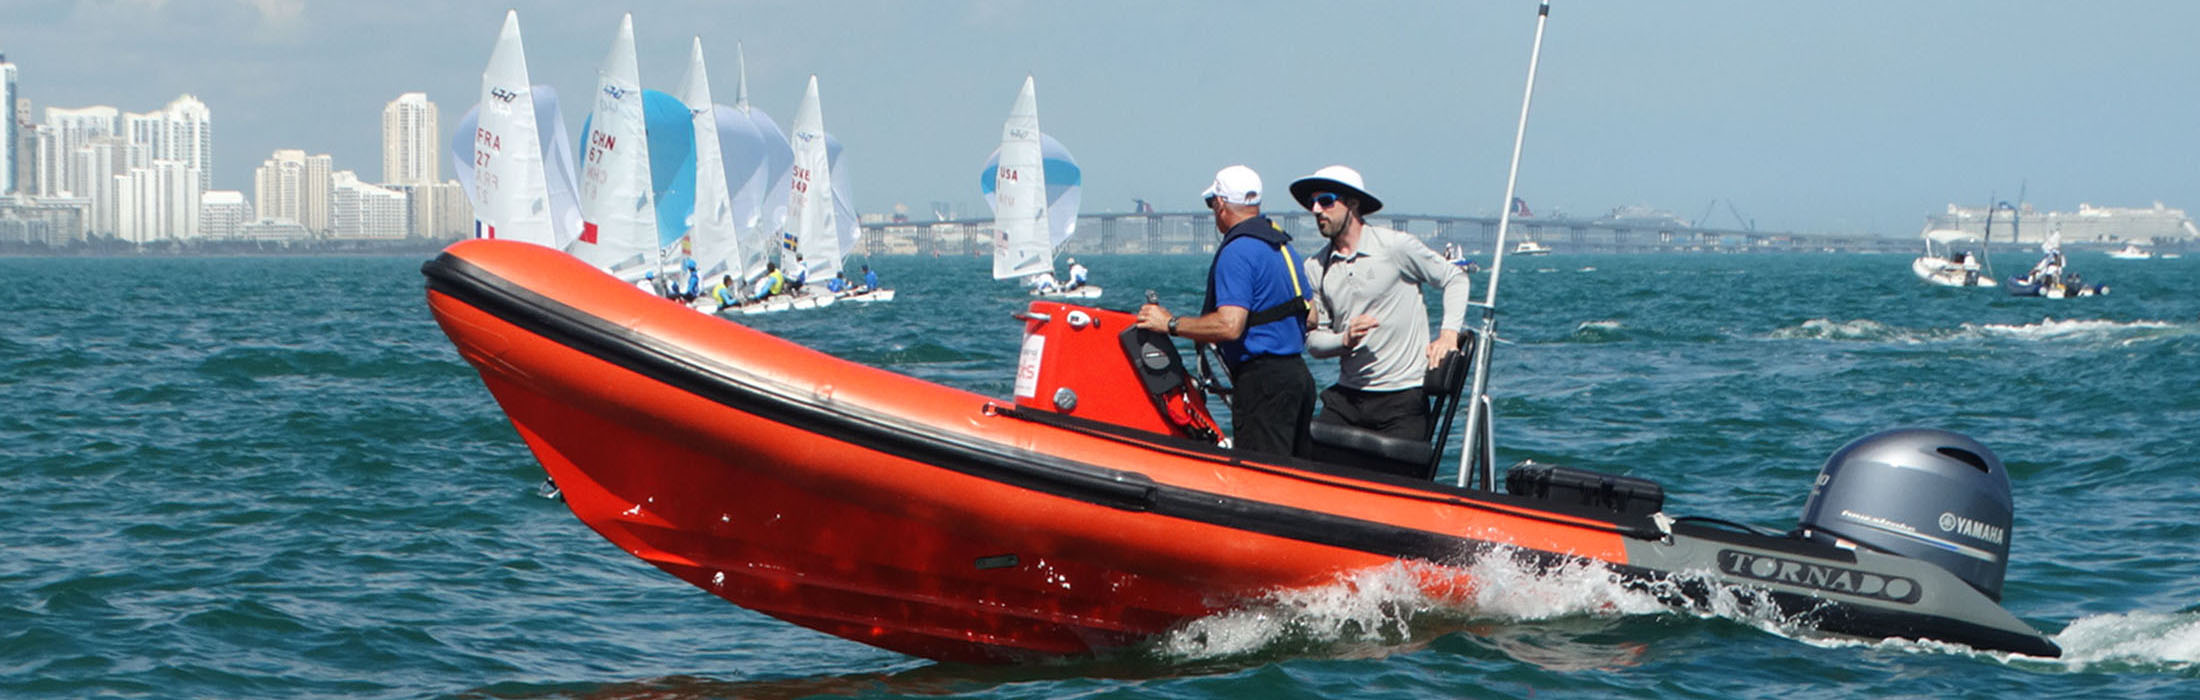 orange/grey rib from Tornado Boats at World Cup in Miami